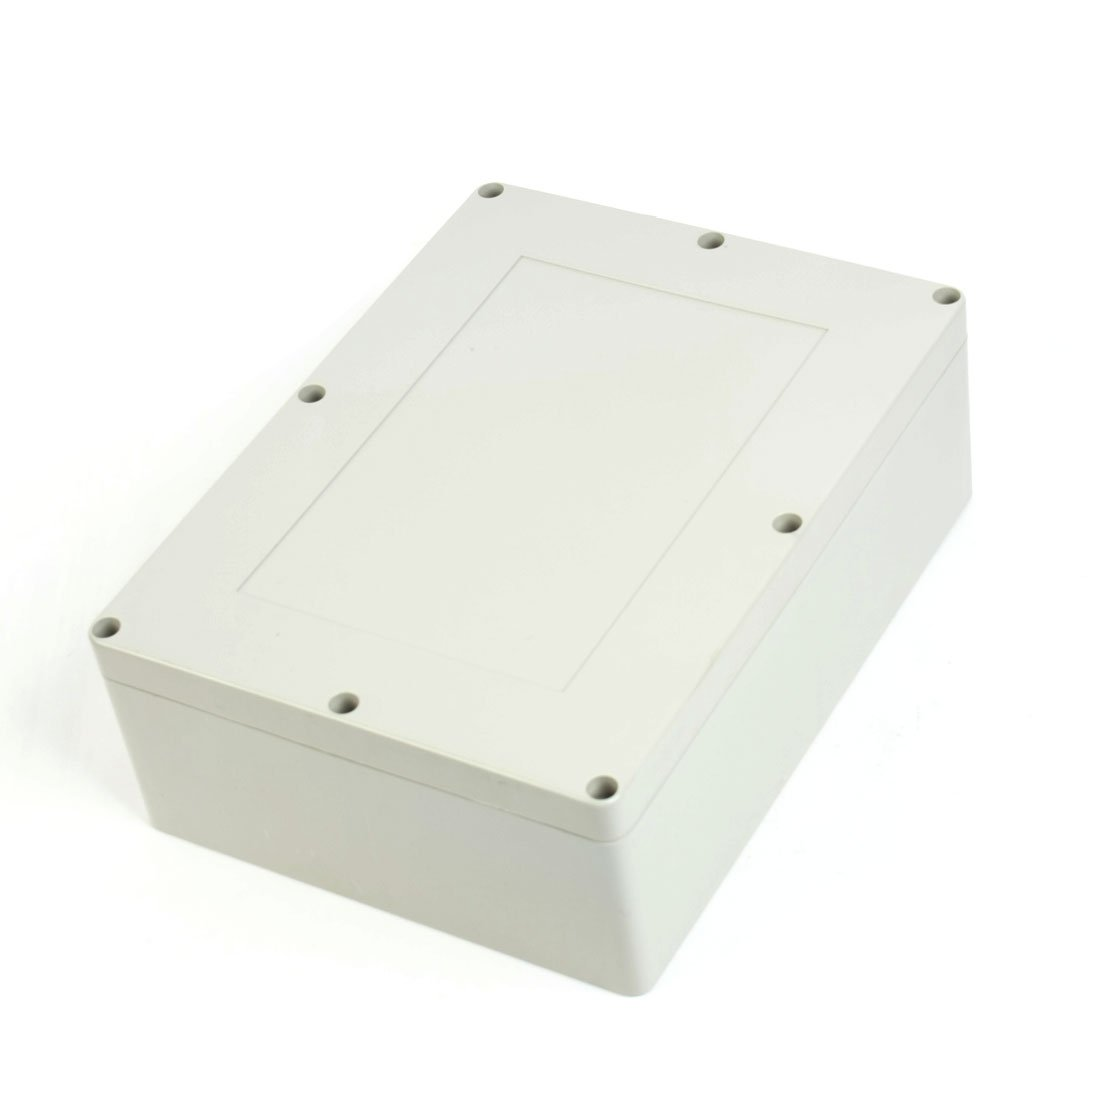 Industry Standard 320mmx240mmx110mm Cable Connect Waterproof Plastic Case Junction Box